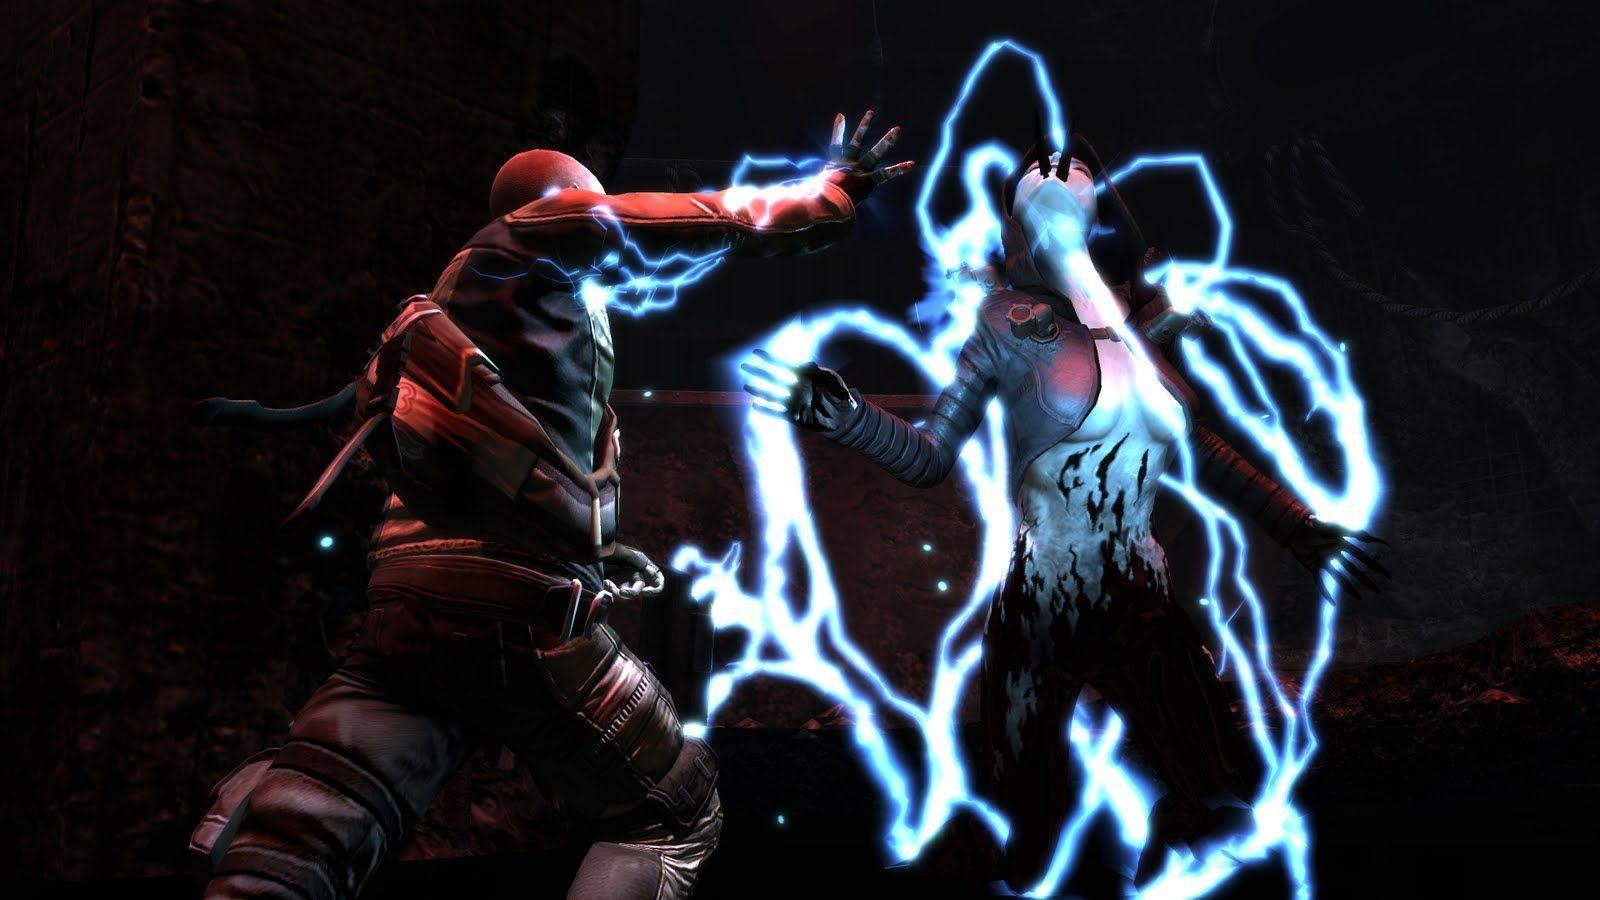 Infamous 2 Wallpapers - Wallpaper Cave